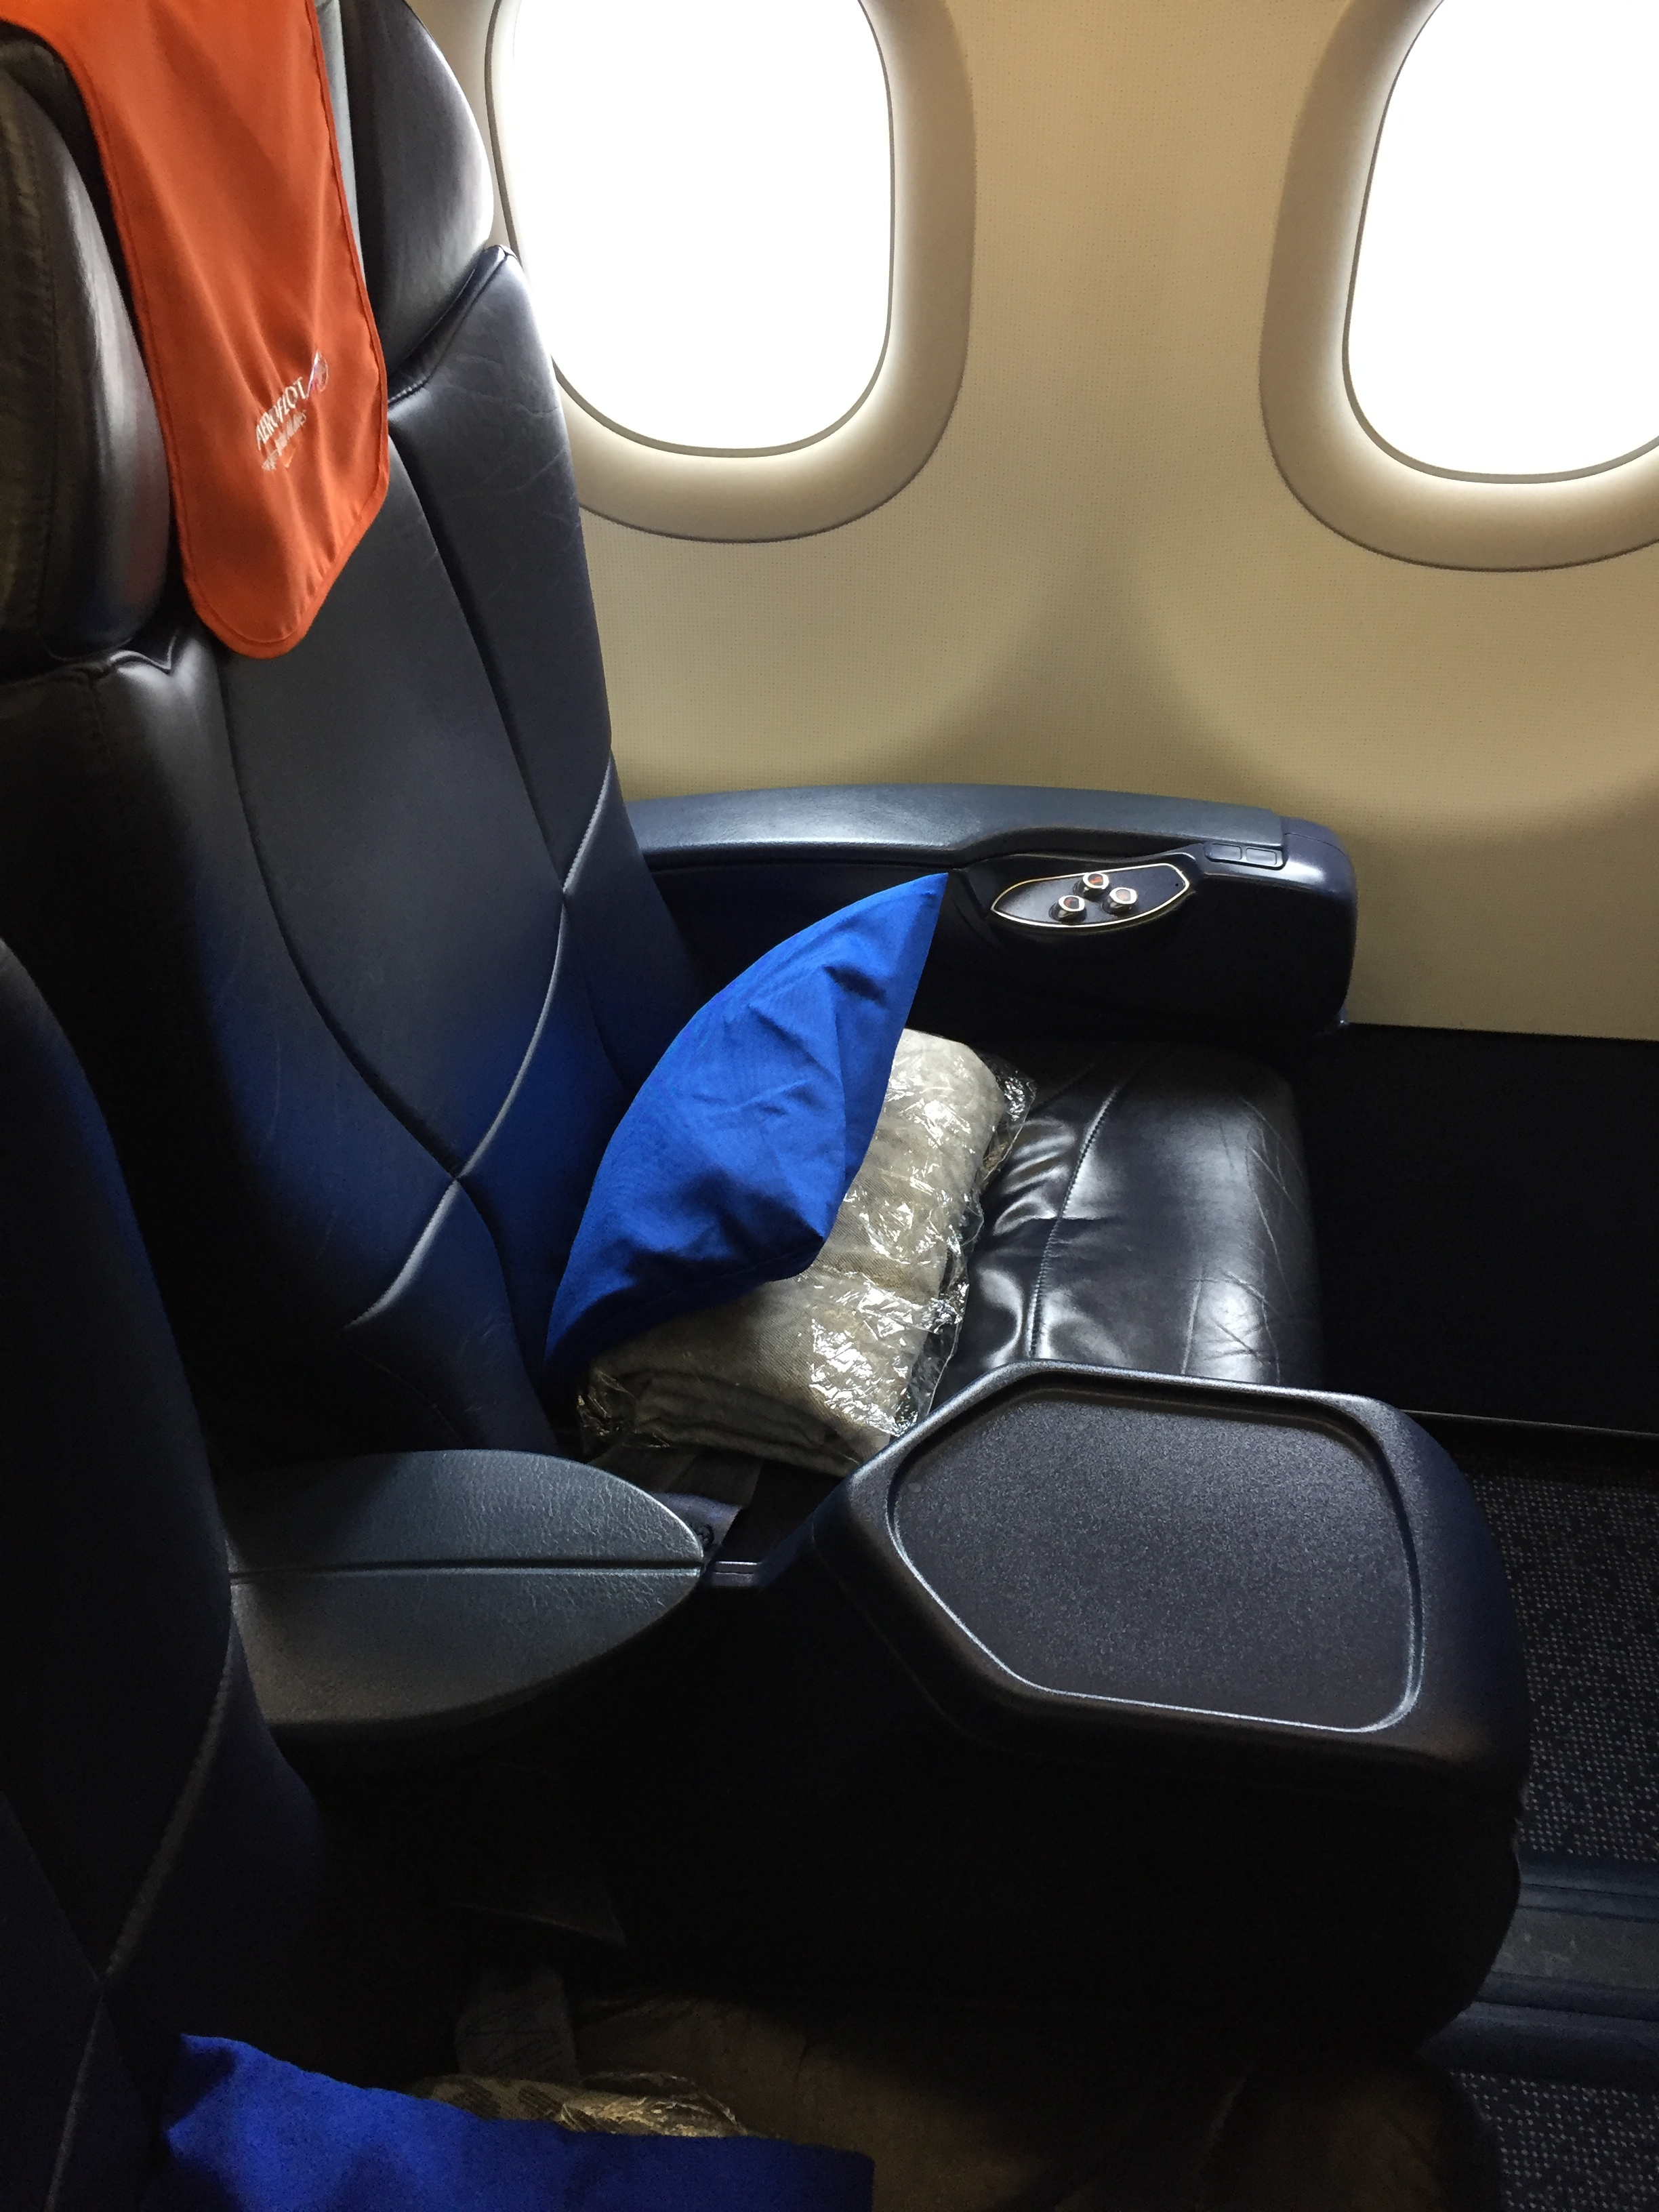 """I found Aeroflot's seat to be quite generous in terms of space and, compared to other airlines that in short and medium haul offer just a lightly upgraded version of their economy product (what we could call the """"European business class"""" type of product).Aeroflot European business class is a truly differentiated product."""